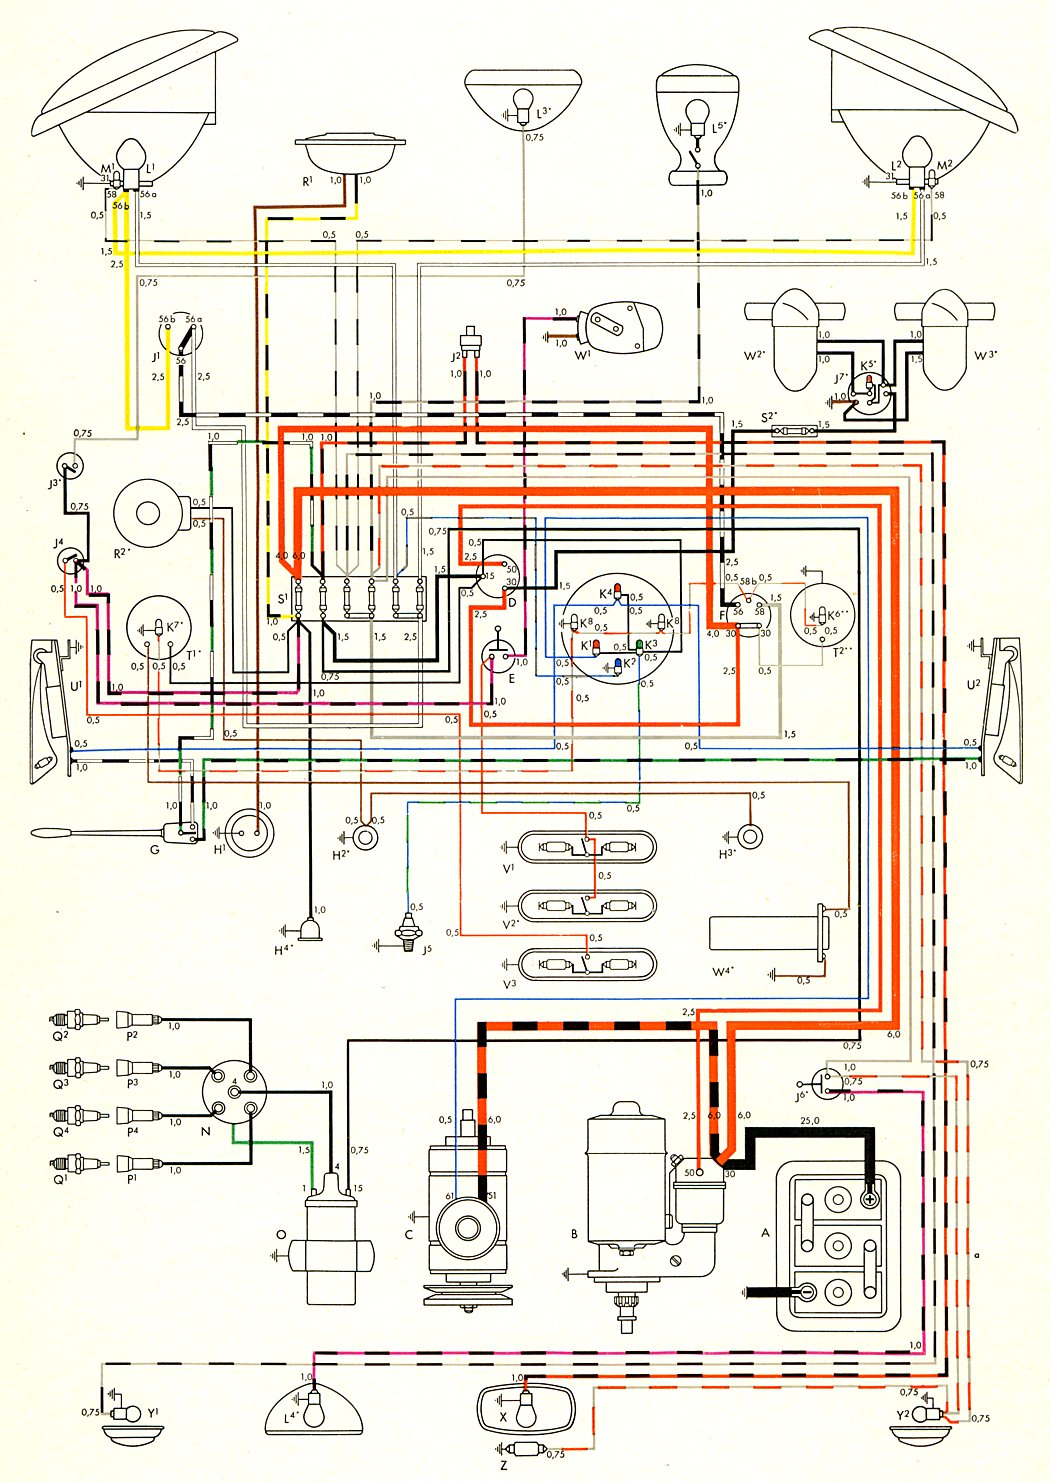 Vw Beetle Wiring Diagram : Wiring diagram vw beetle parking lights free